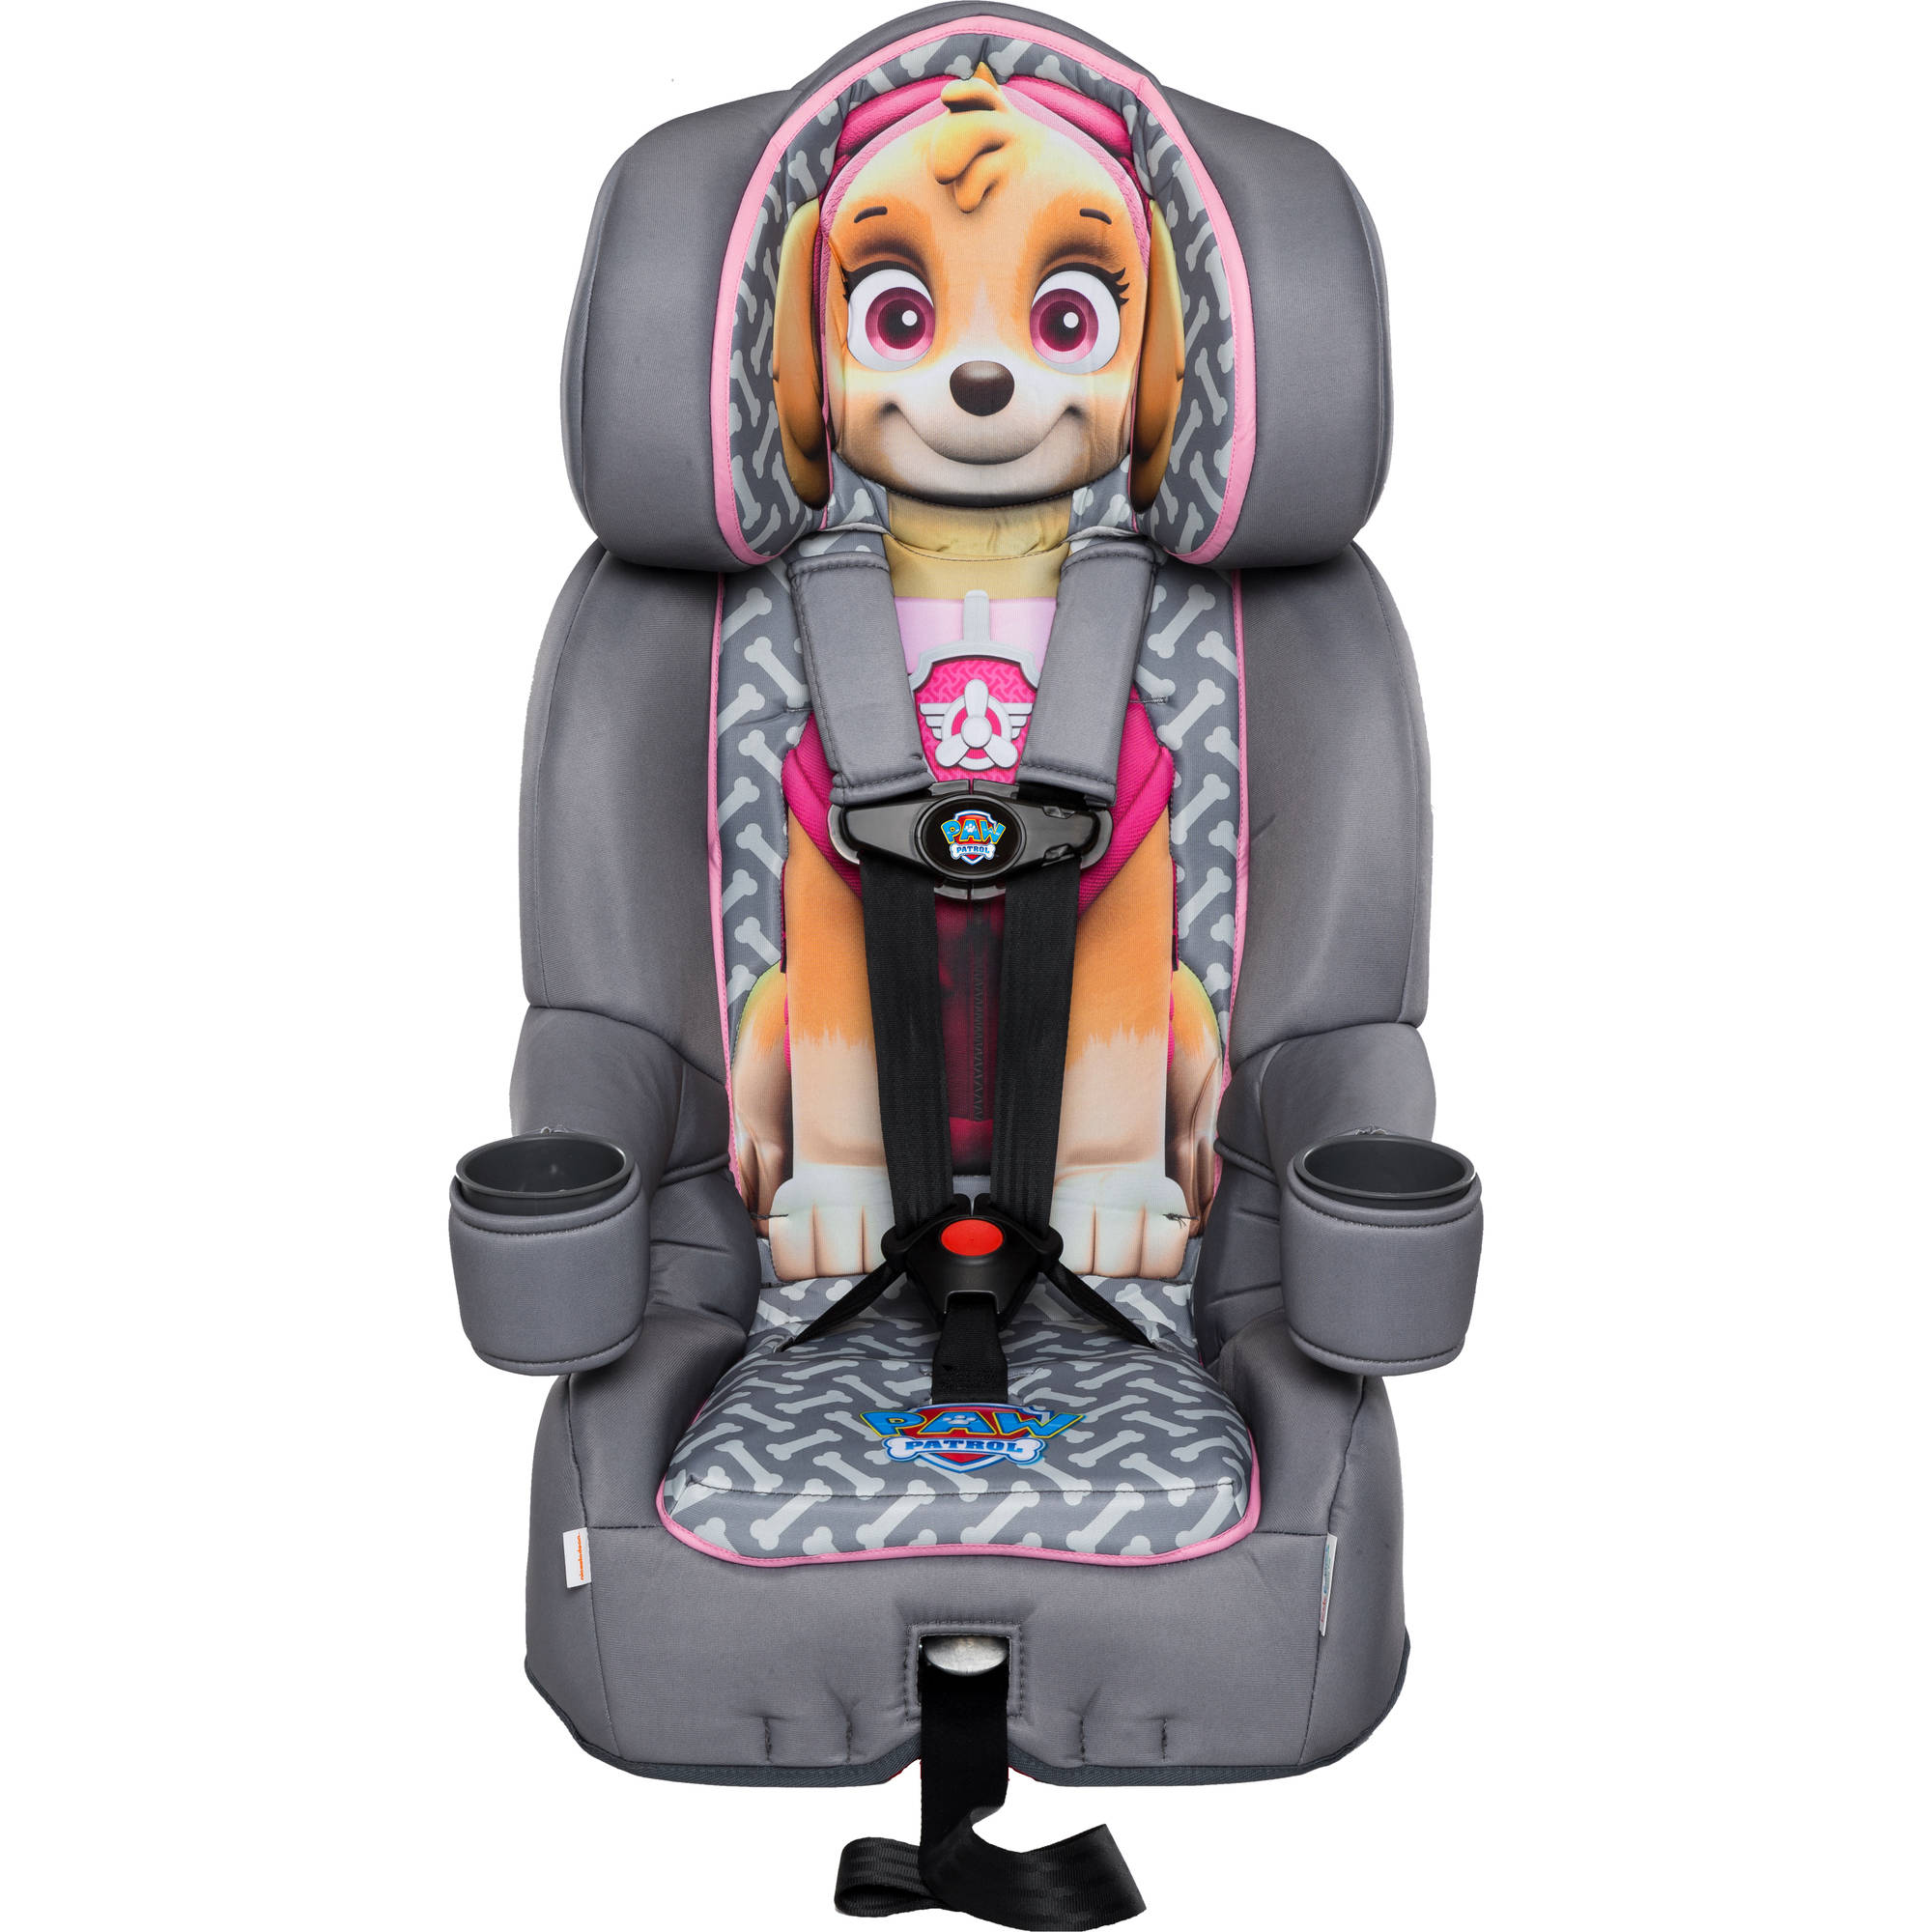 Kidsembrace Friendship Combination Harness Booster Car Seat, Paw Patrol Skye